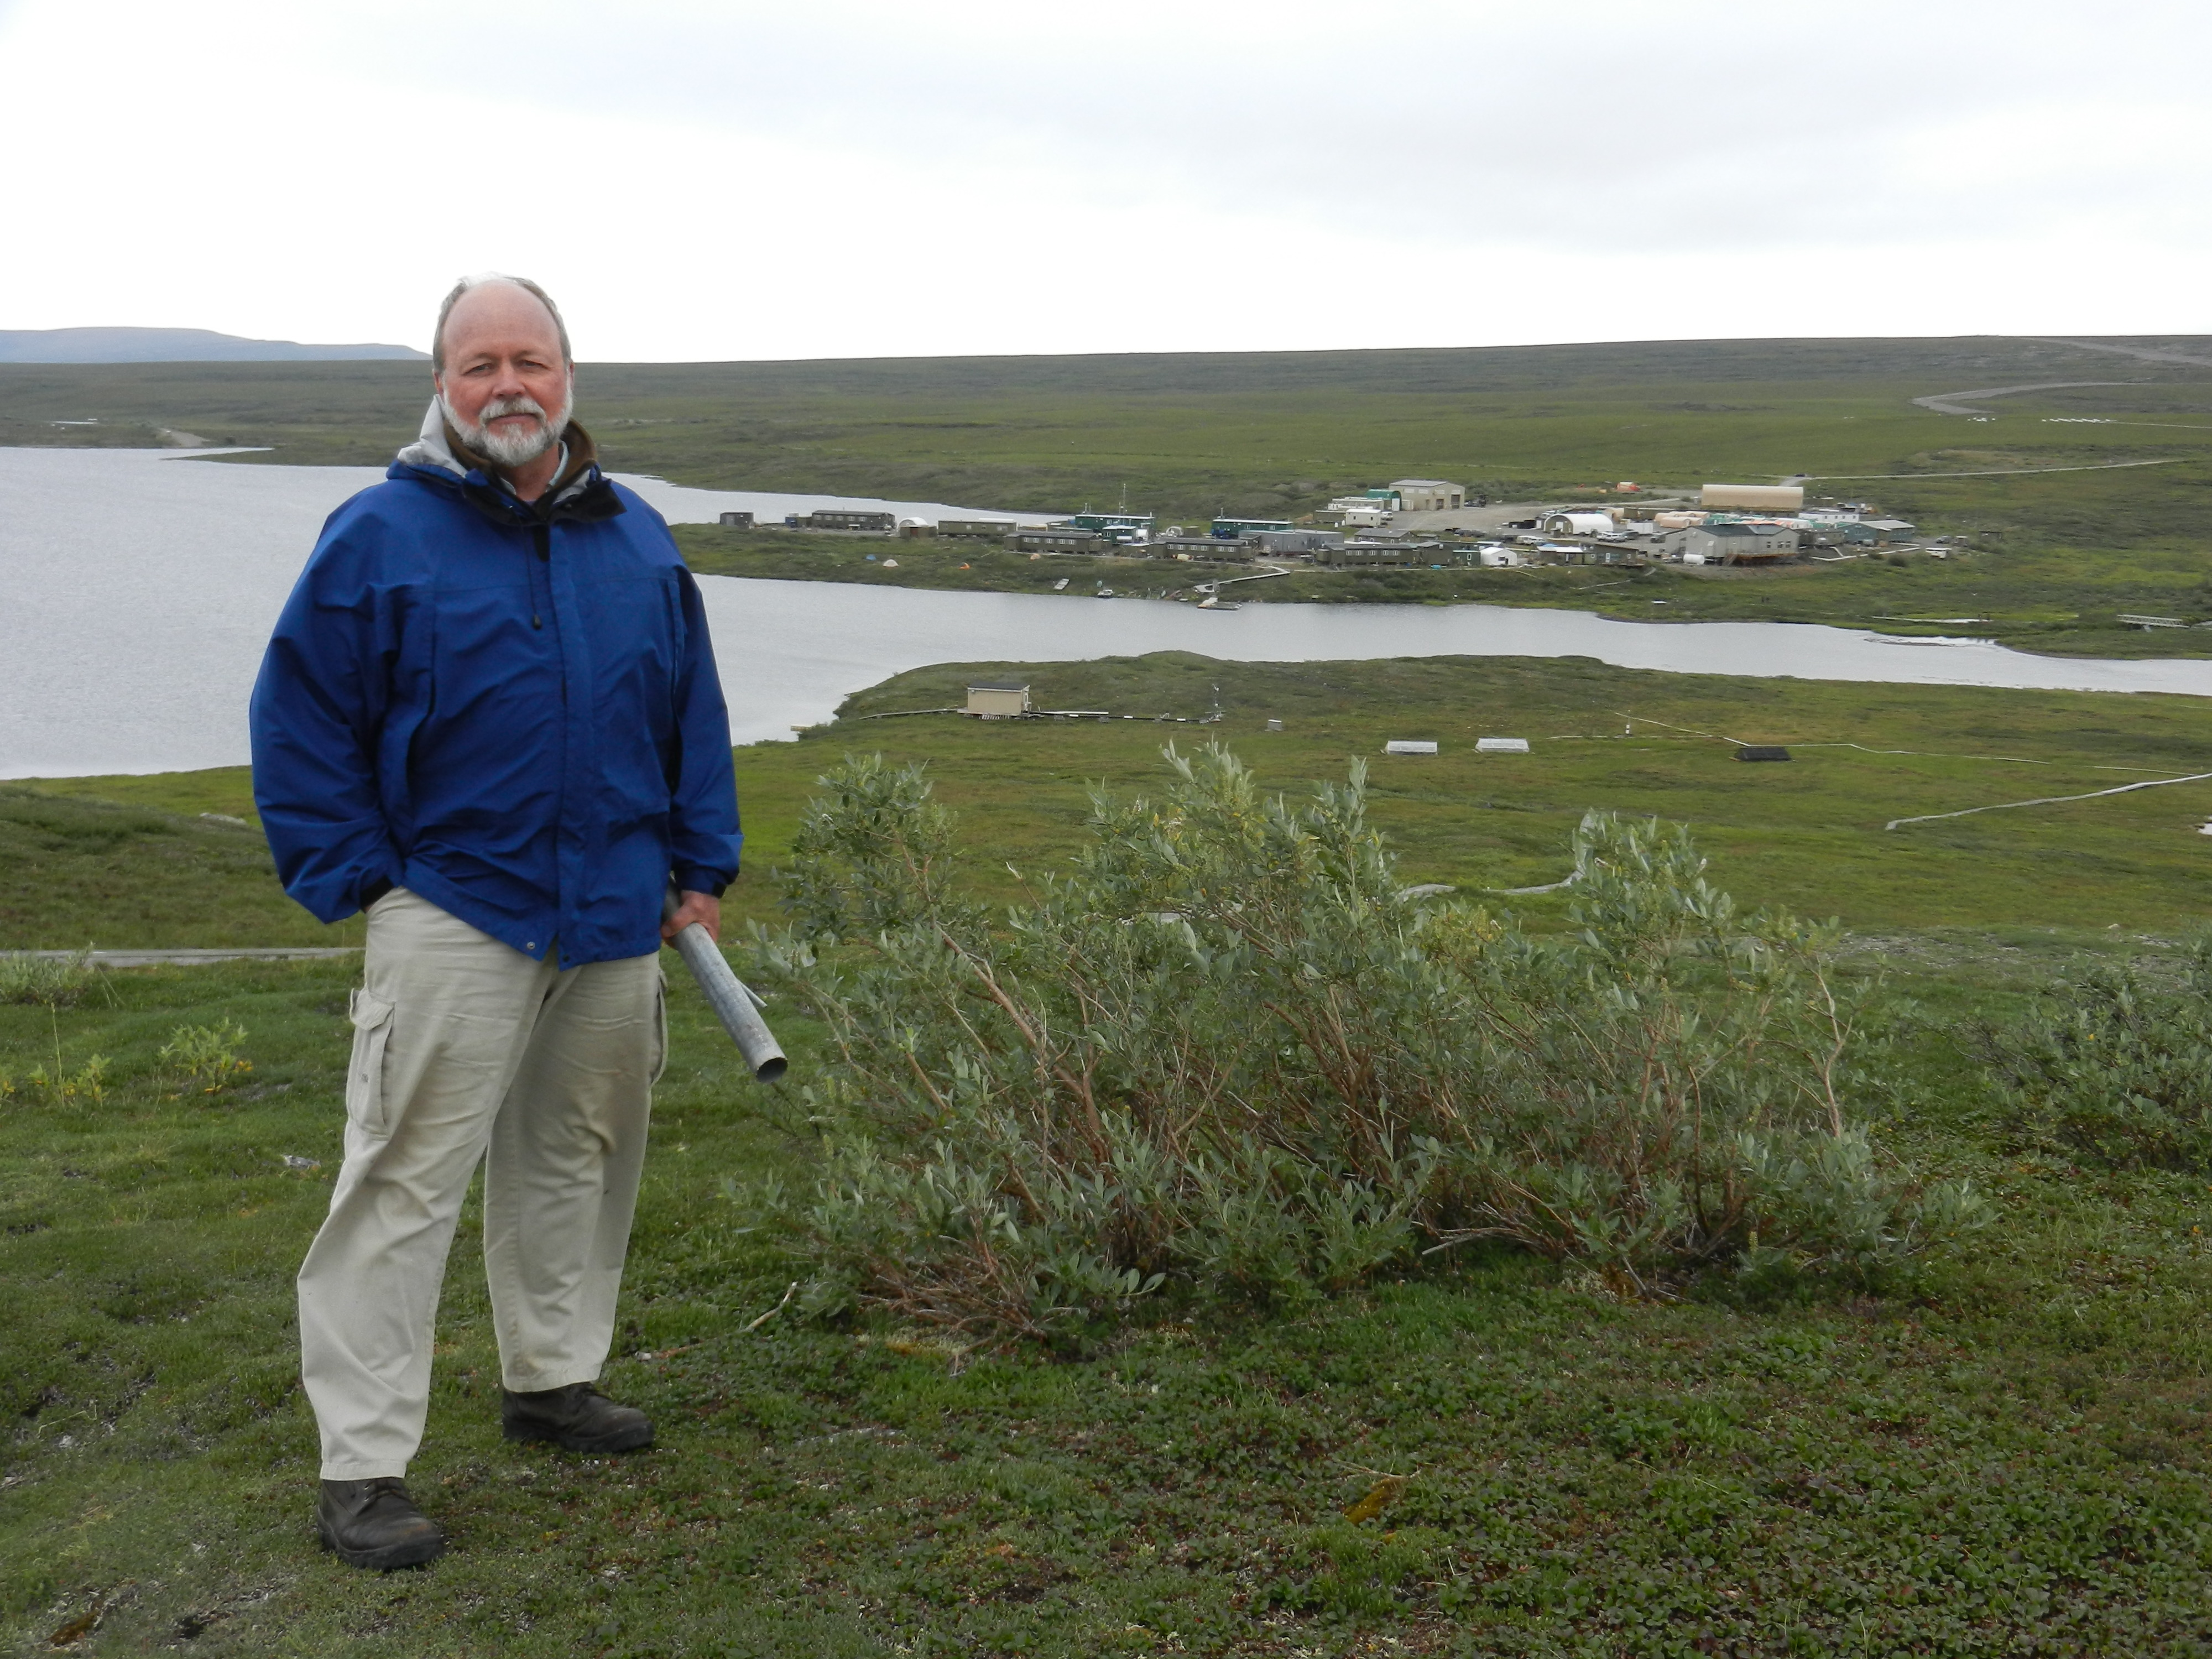 As the Arctic warms, scientists at this remote field station try to make sense of the changing environment